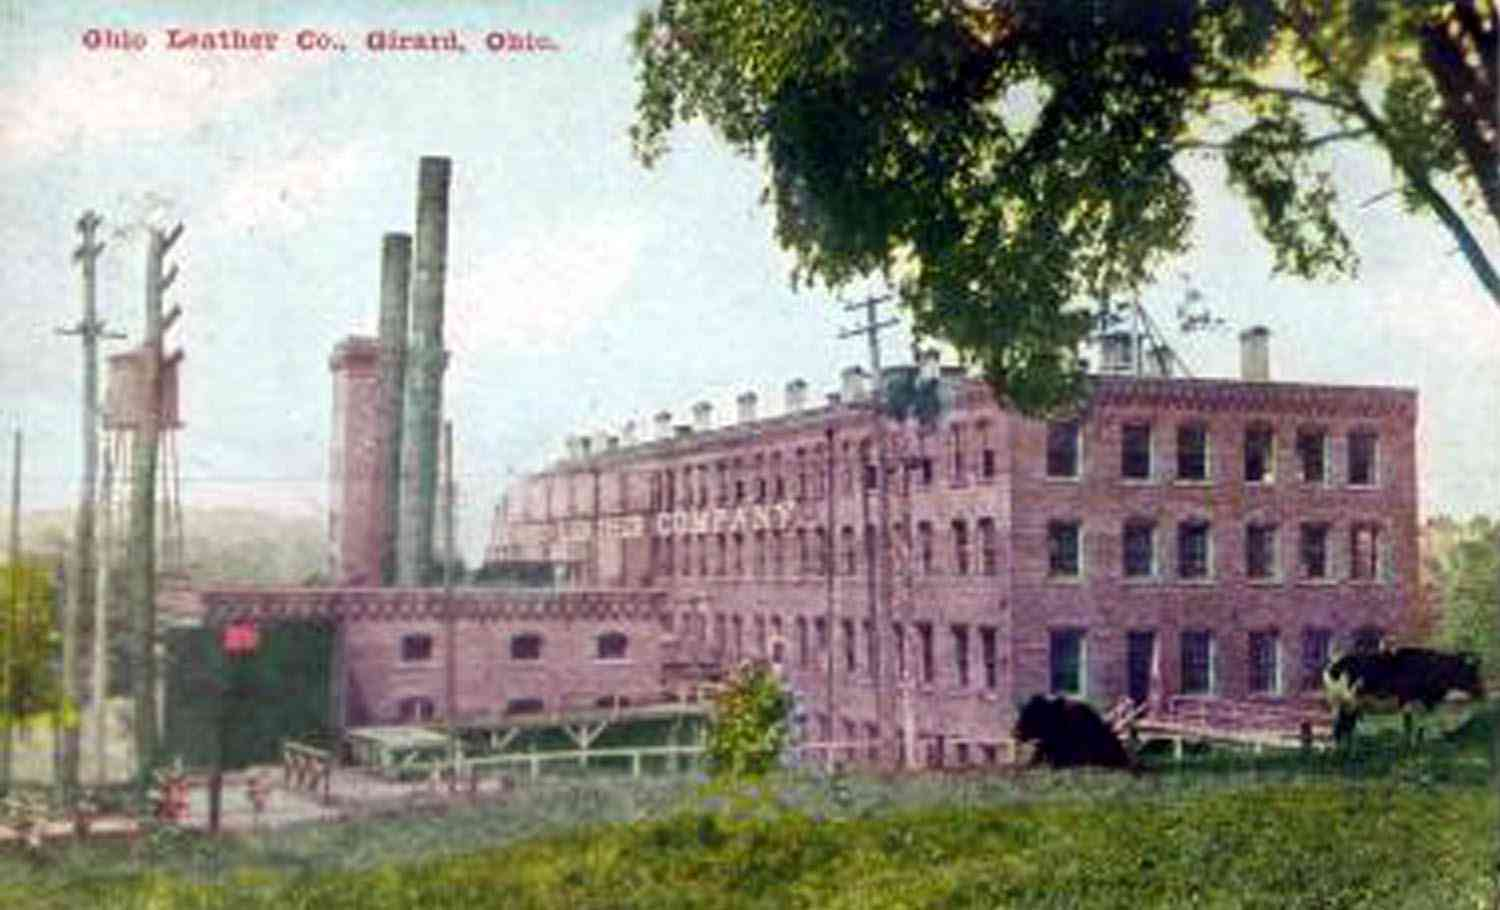 Joseph W Smith Patented The Process Of Preparation Of Leather Which Started The Company Ohio Leather Which Had Stood Opposite The Barnhisel House